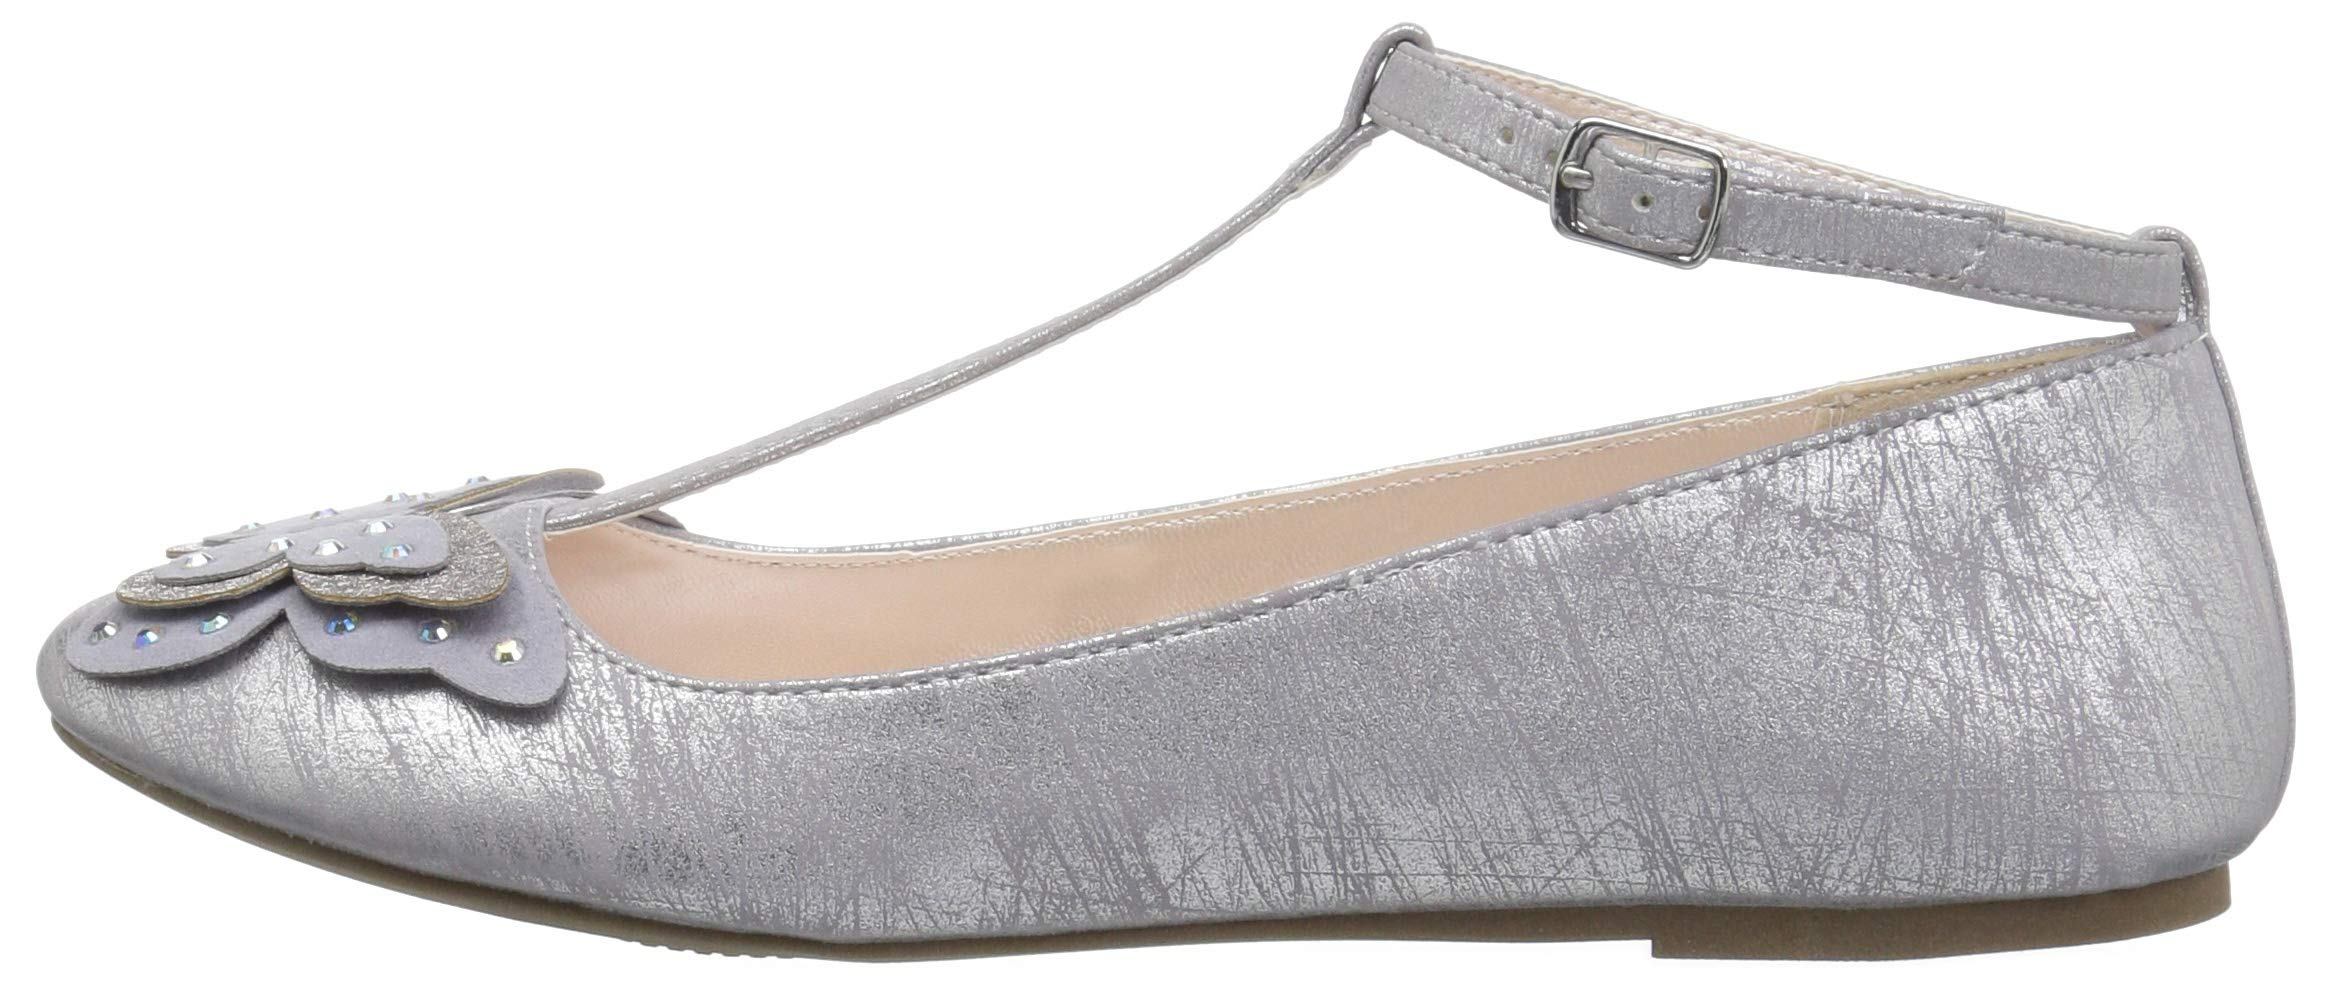 The Children's Place Girls' T-Strap Ballet Flats, Light Lavender, Youth 3 Child US Little Kid by The Children's Place (Image #5)